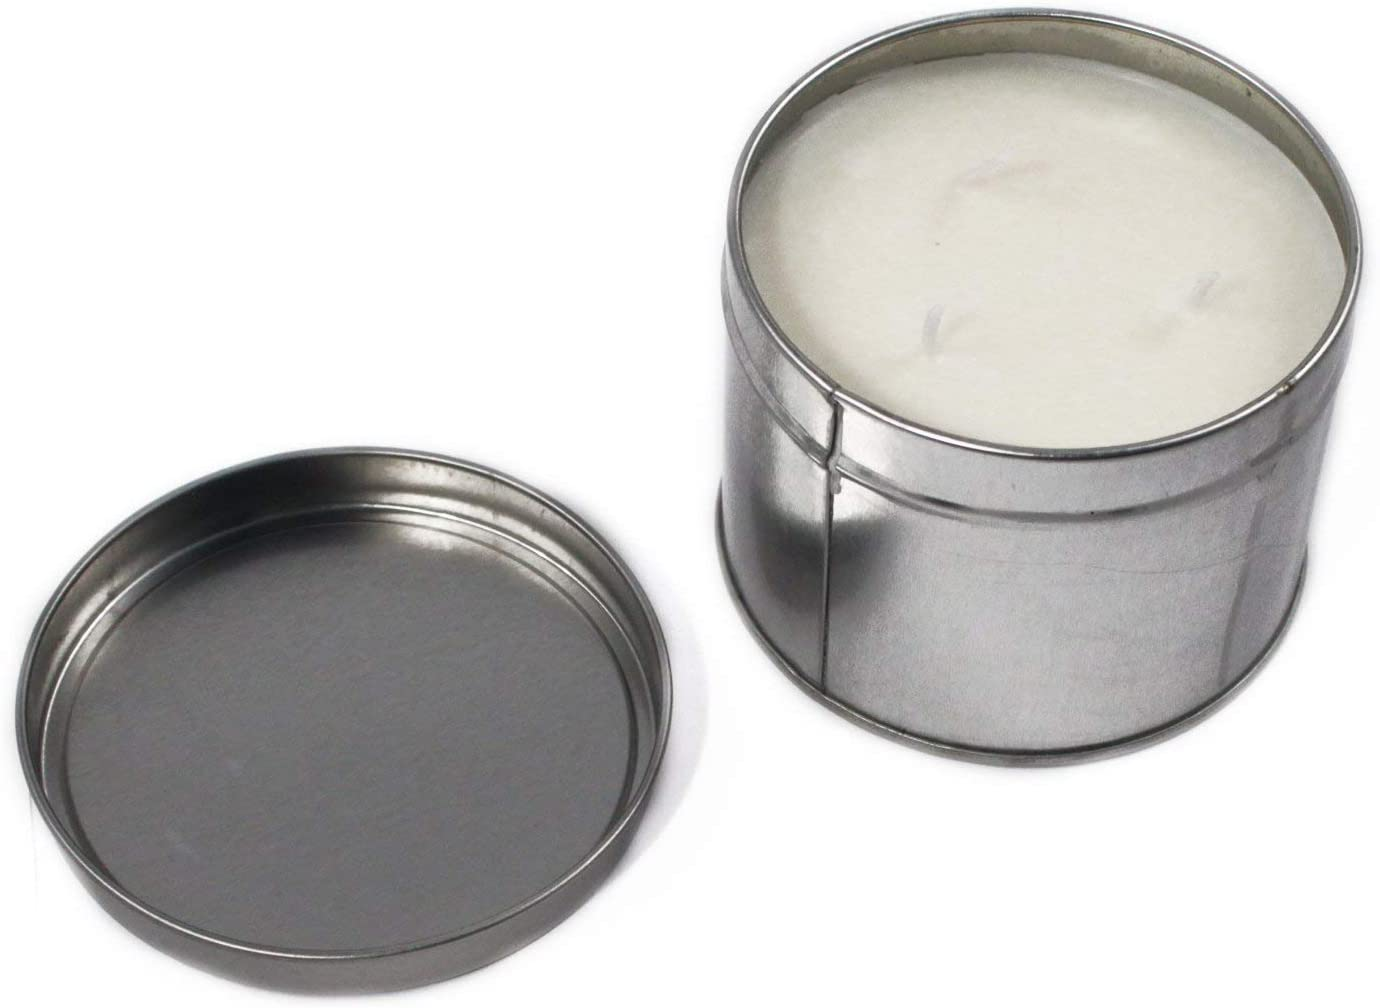 ASR Outdoor 3-Wick 36 Hour New product type Candle Outlet sale feature Survival